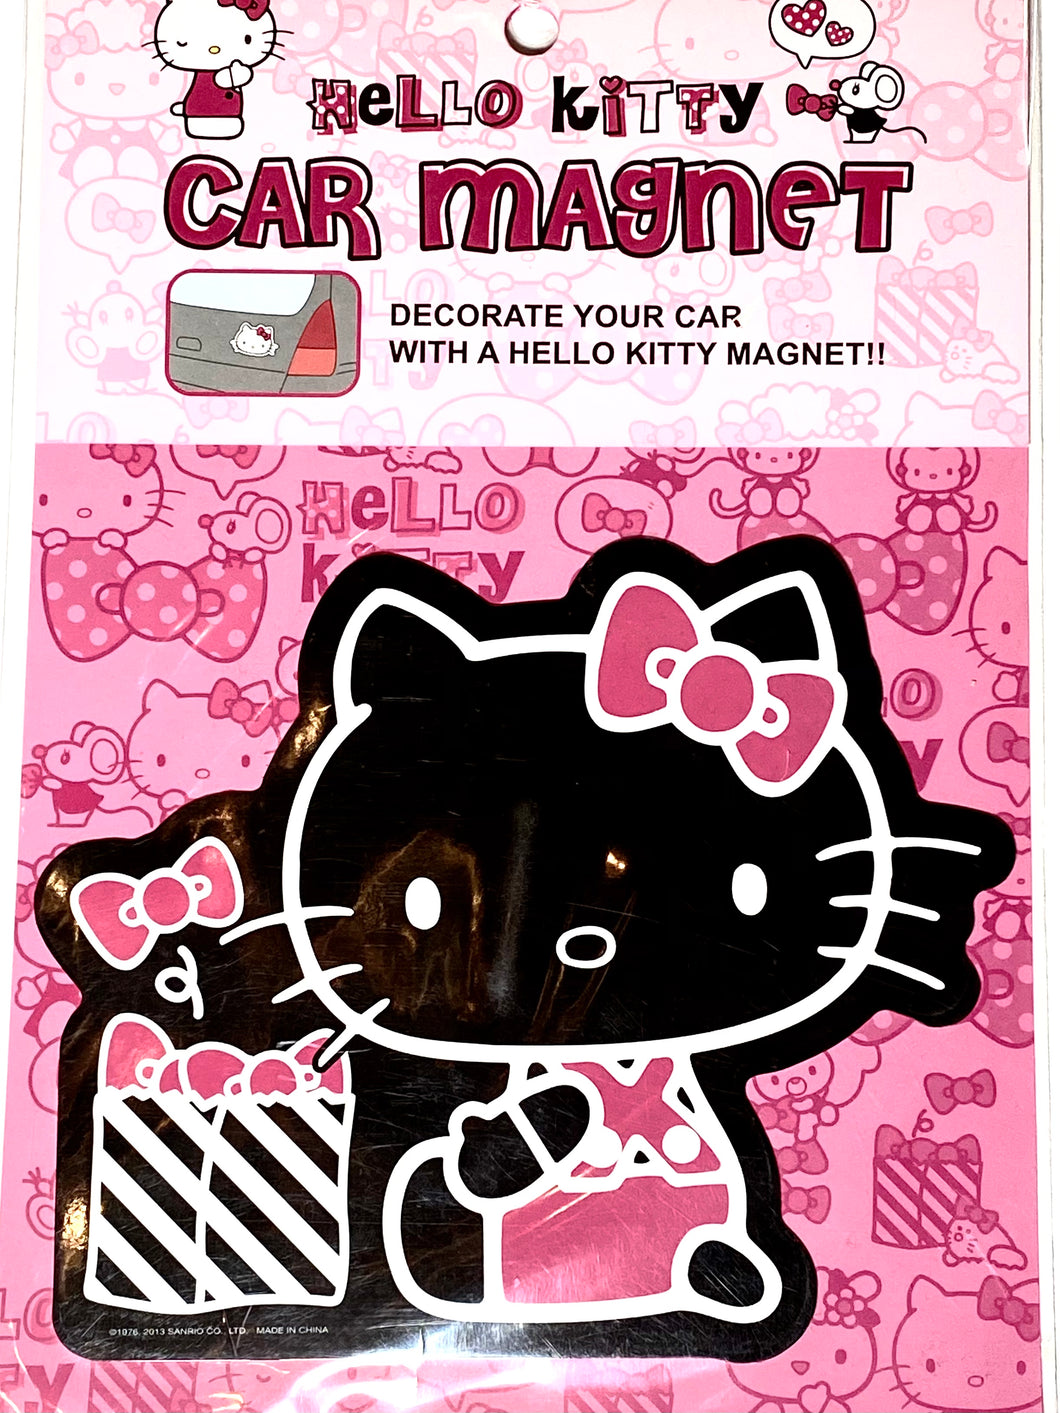 Hello Kitty with Bows in a Bag Car Magnet